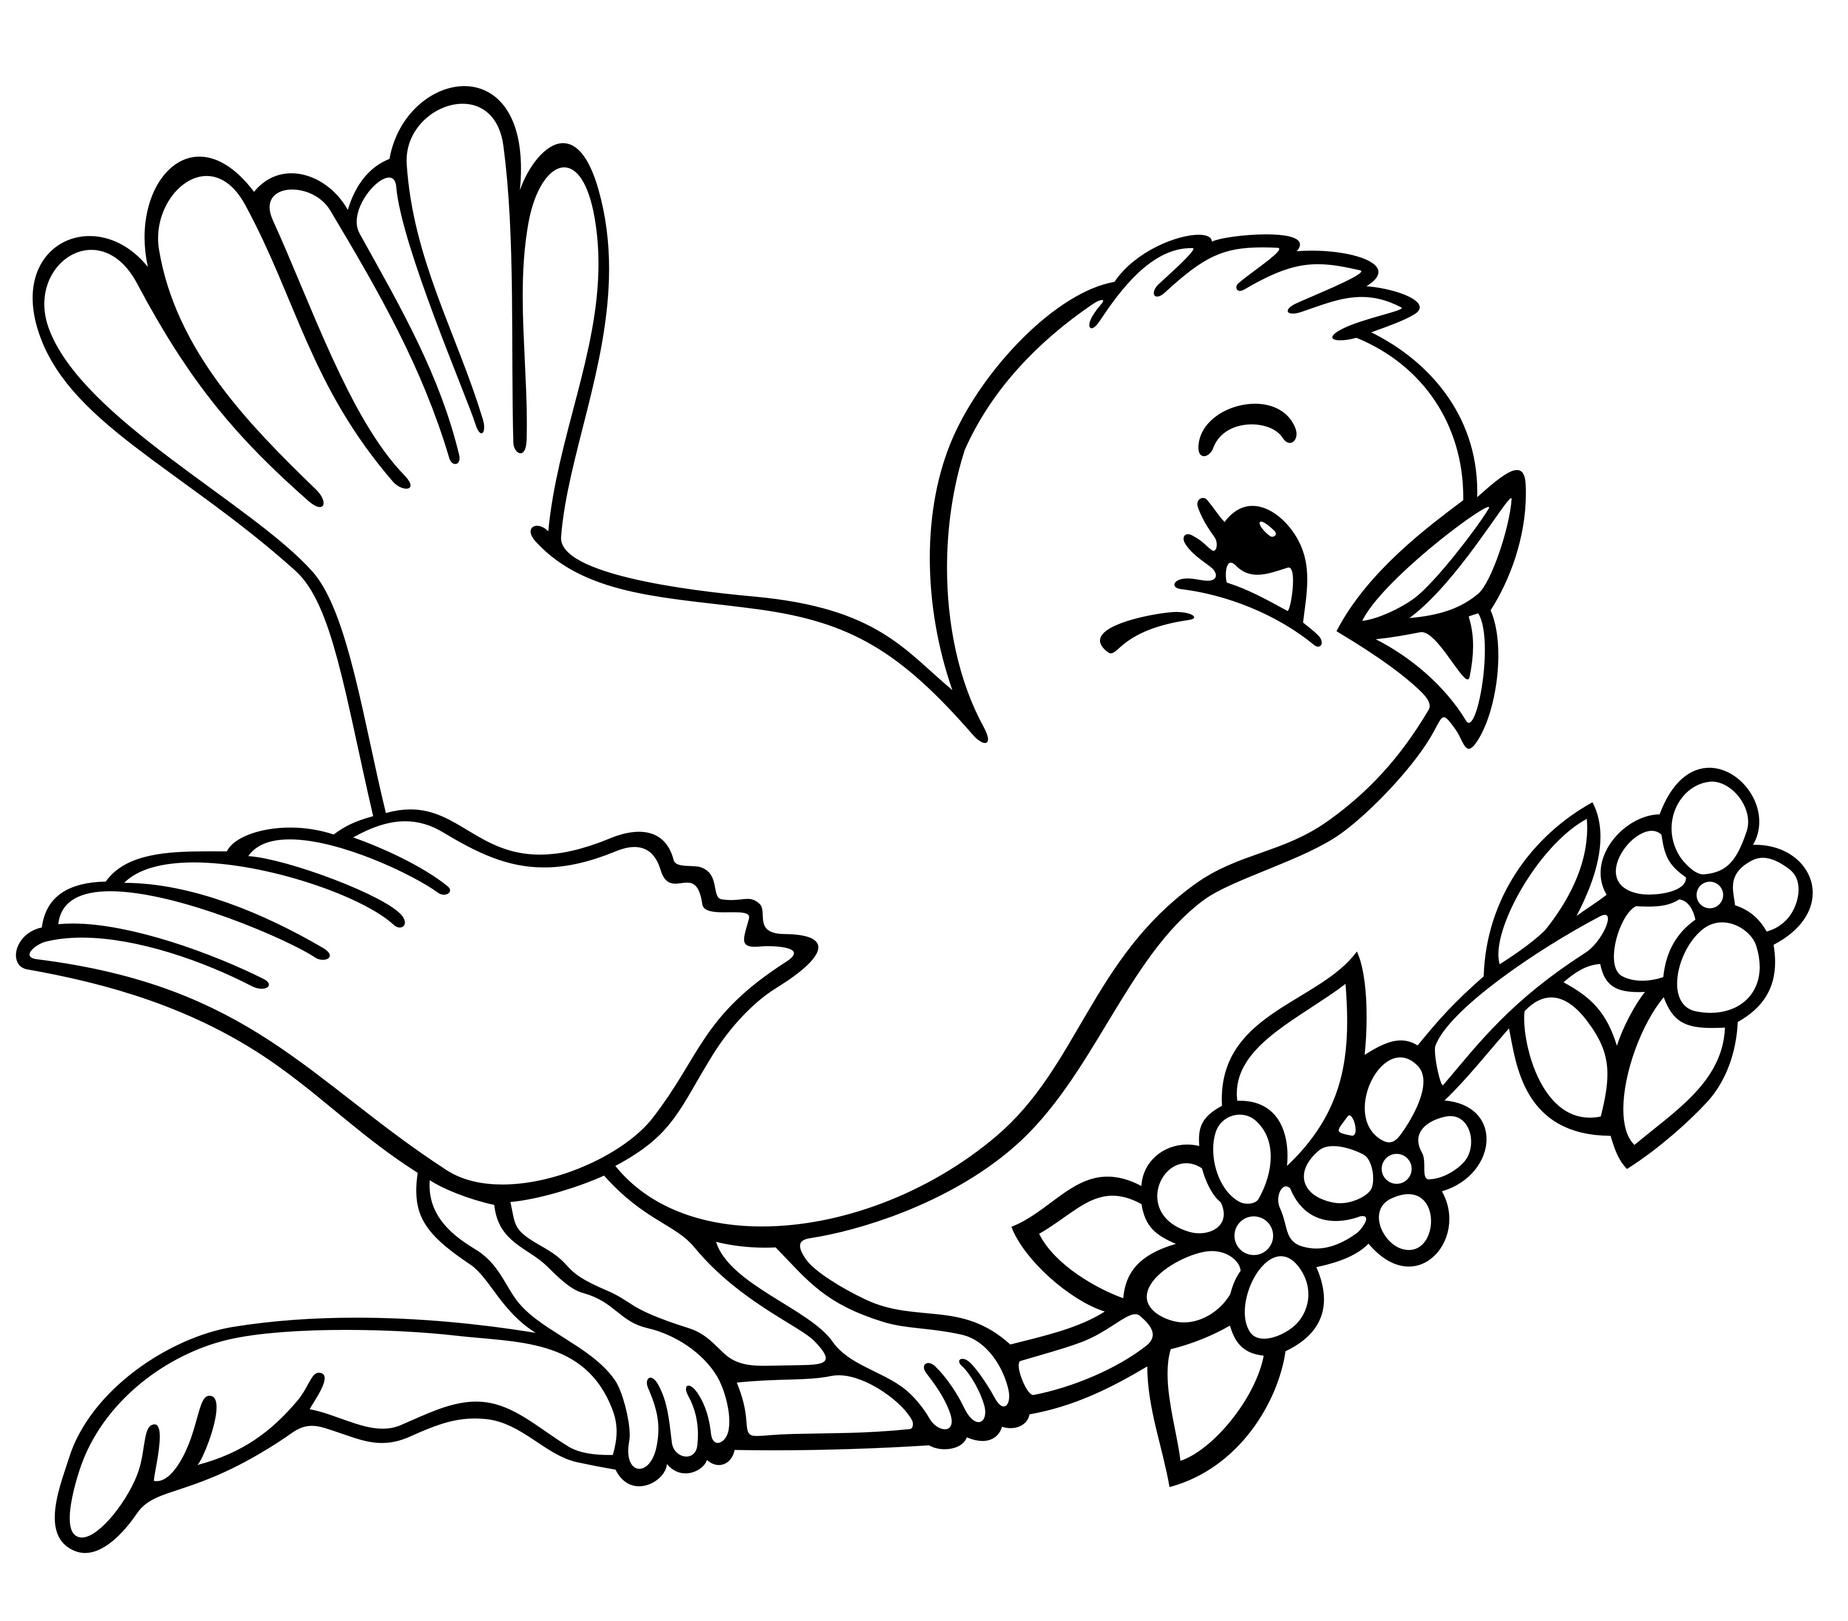 bird coloring pages | Bird coloring pages, Spring coloring ...